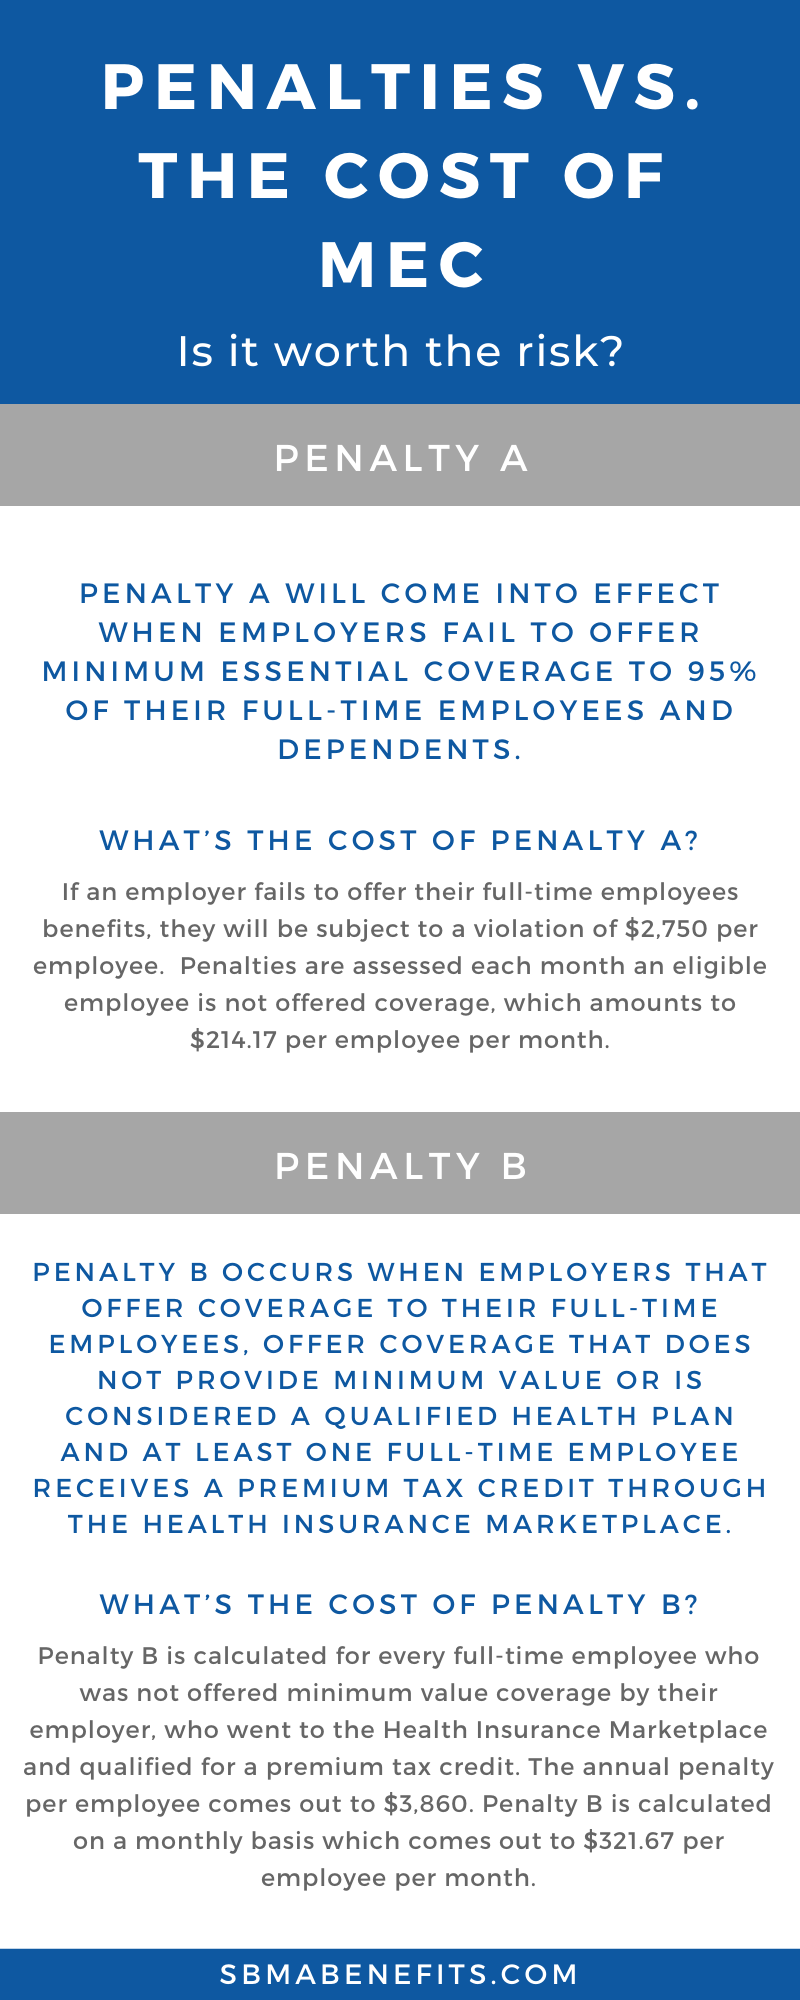 Penalties vs the Cost of MEC- How Much Can You Save?